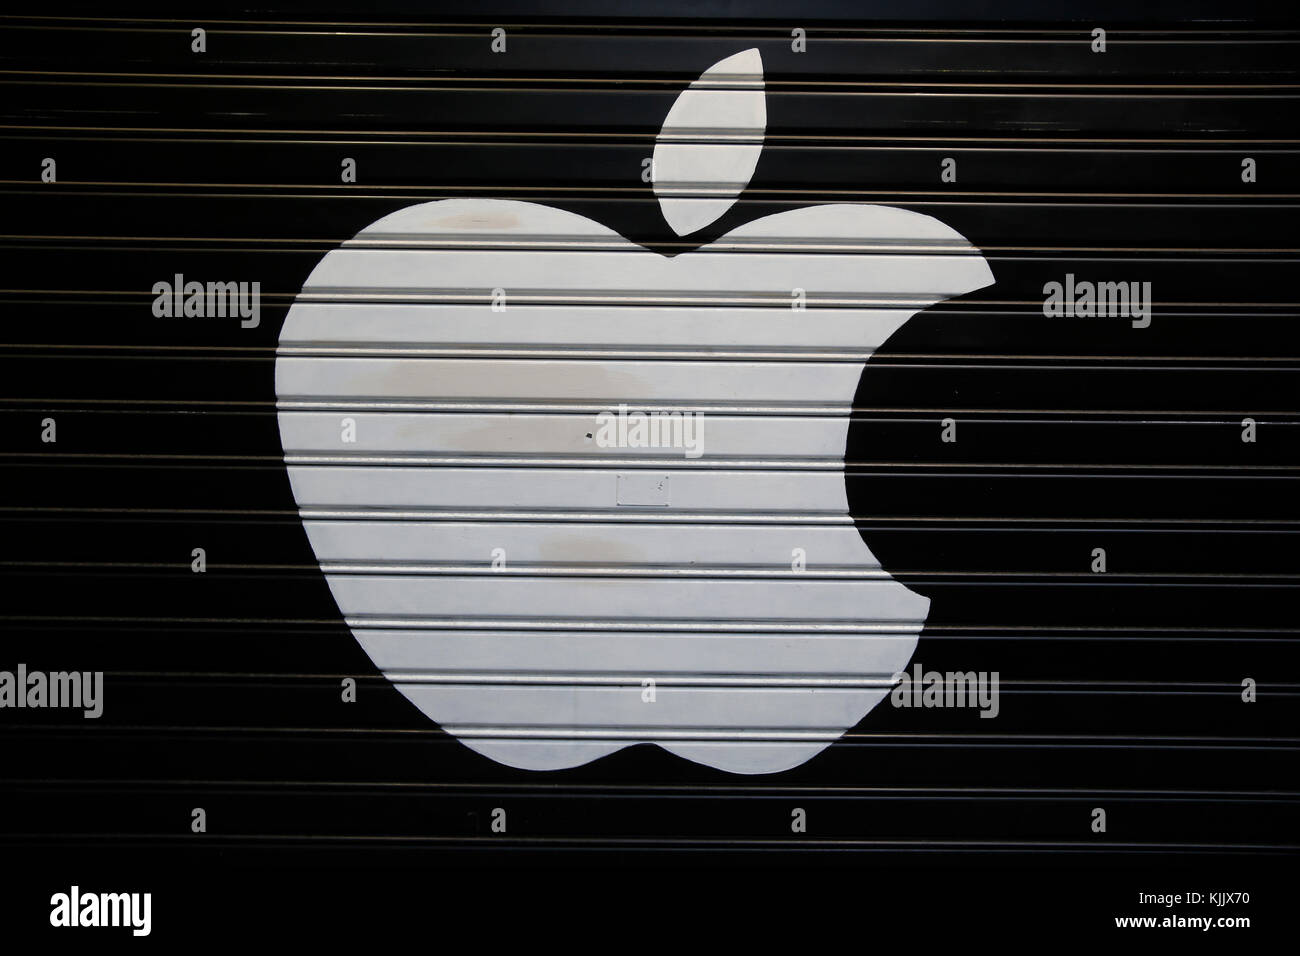 Apple logo on a shop front. Italy. - Stock Image